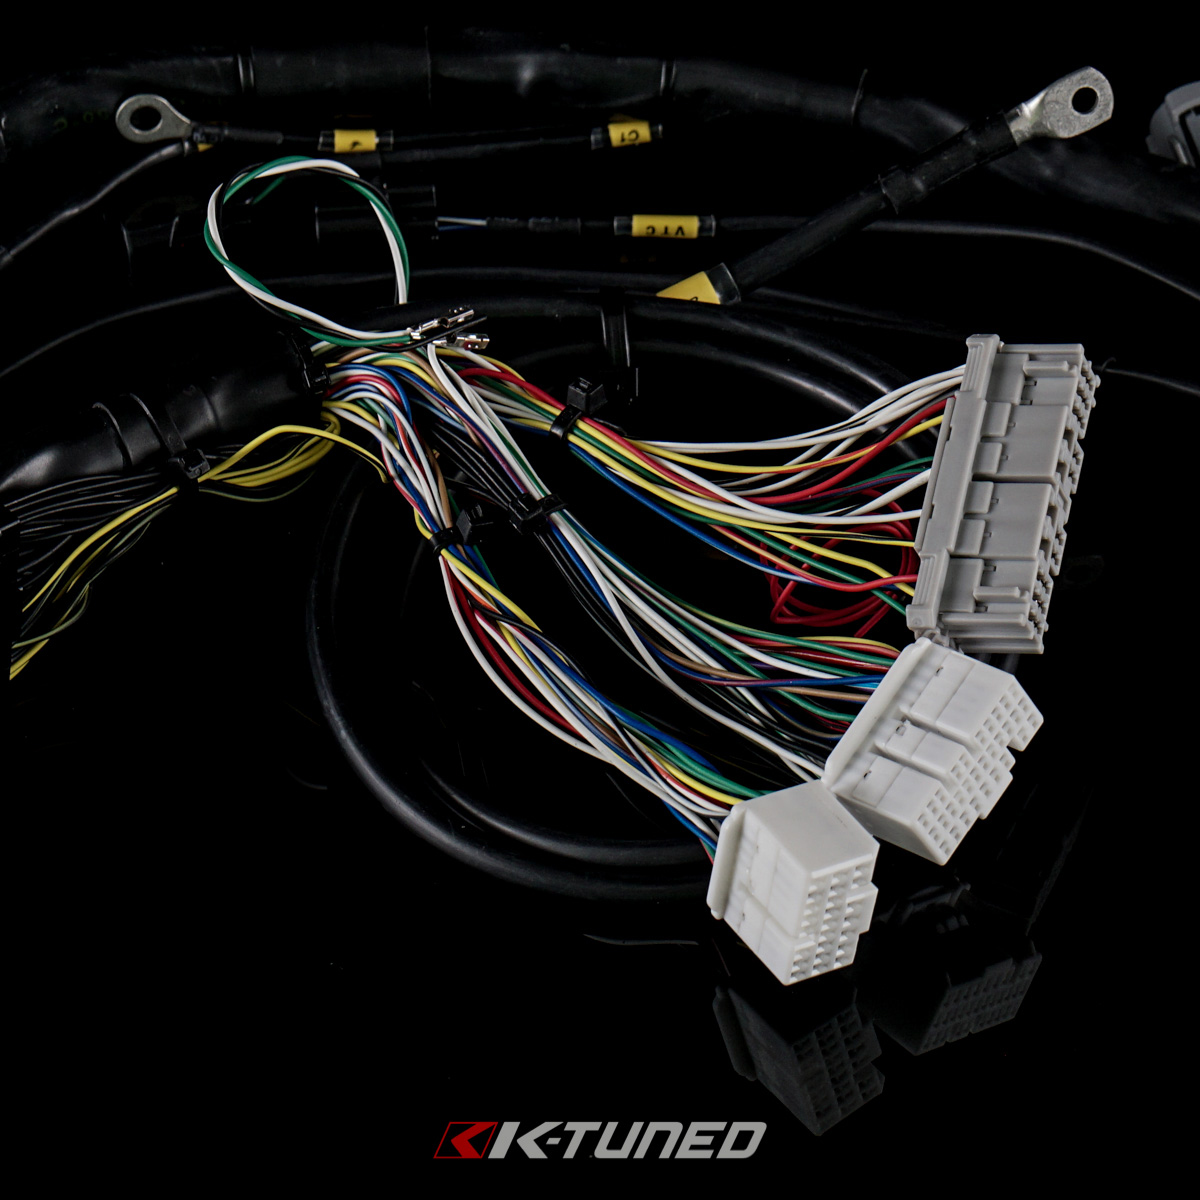 KTH 204 ENG_020 k series tucked engine harness rsx tucked wire harness at alyssarenee.co